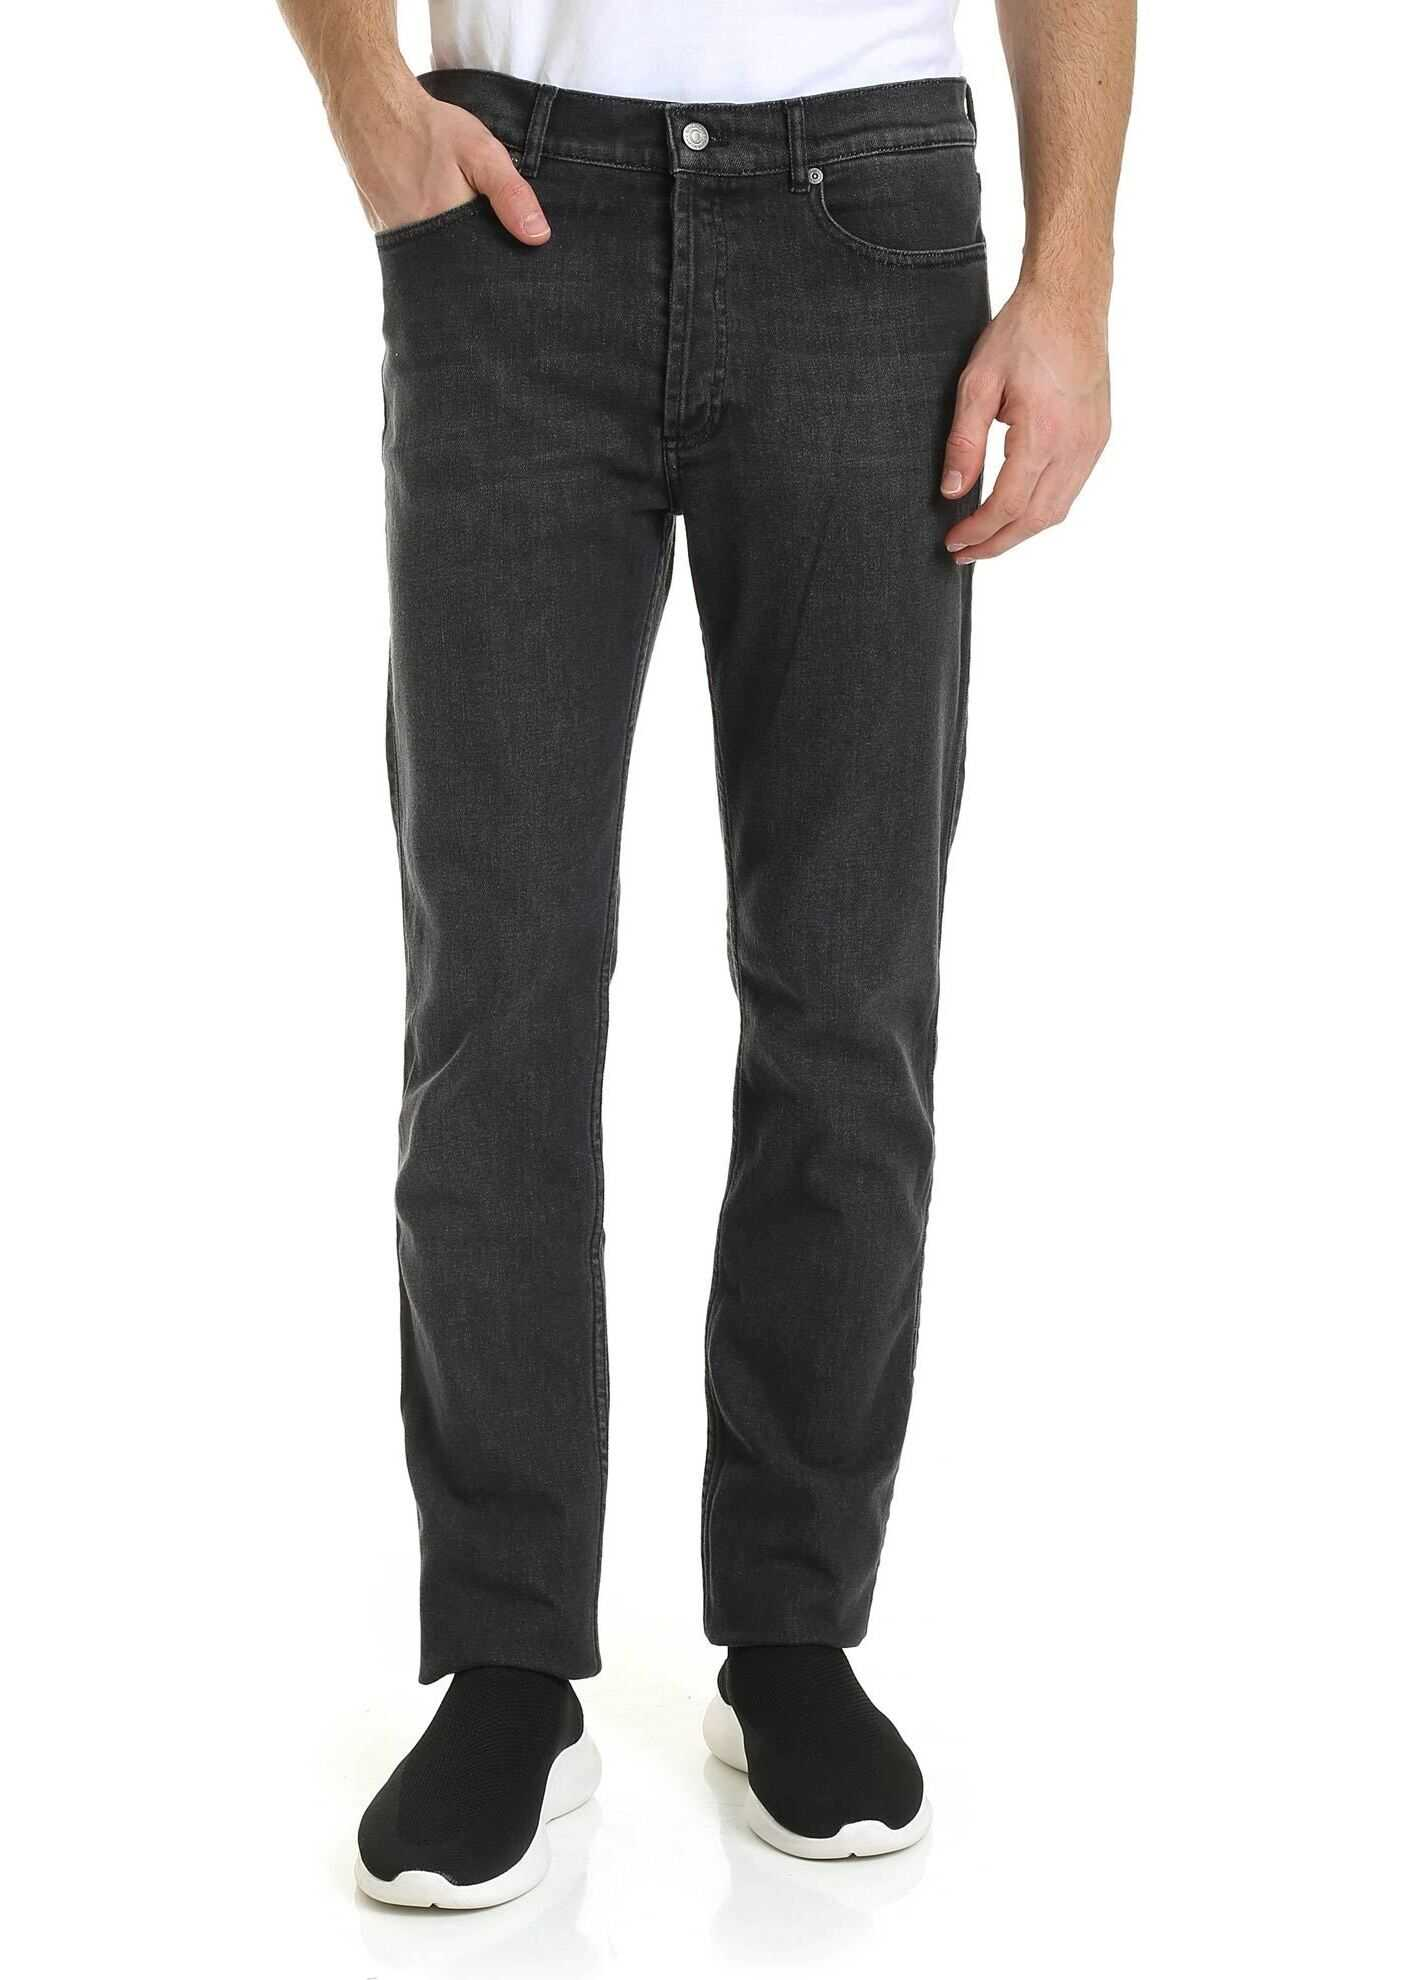 Givenchy Givenchy Print Jeans In Black Black